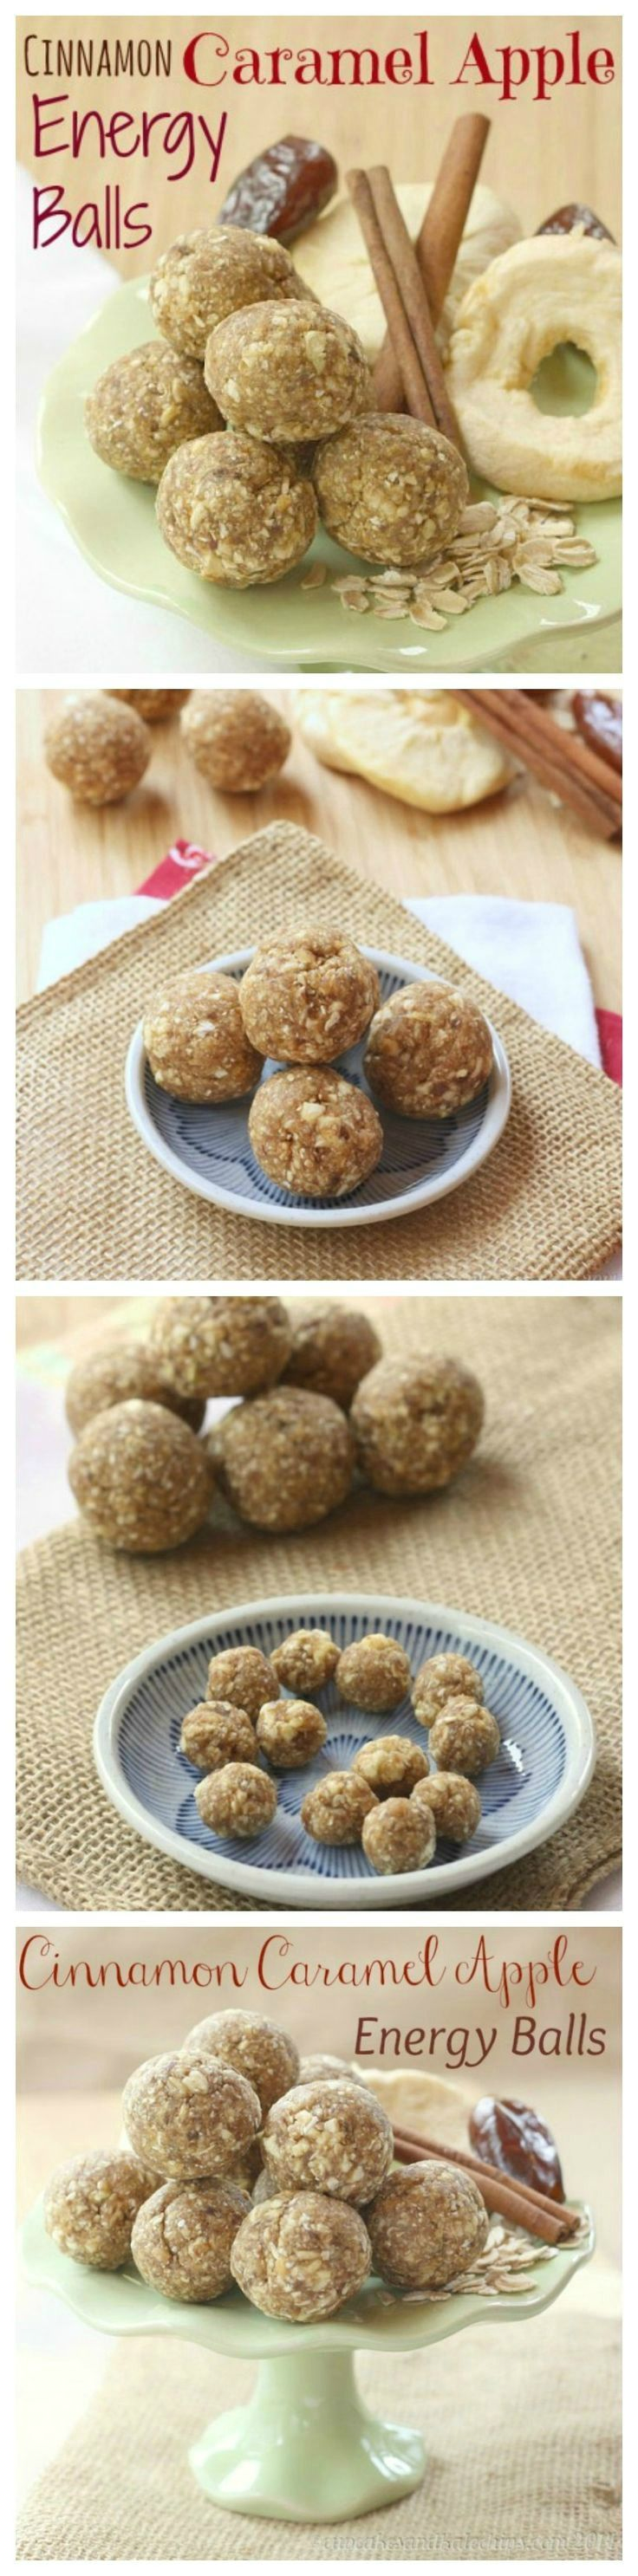 Cinnamon Caramel Apple Energy Balls are not only a delicious snack, but they're a healthy one as well!